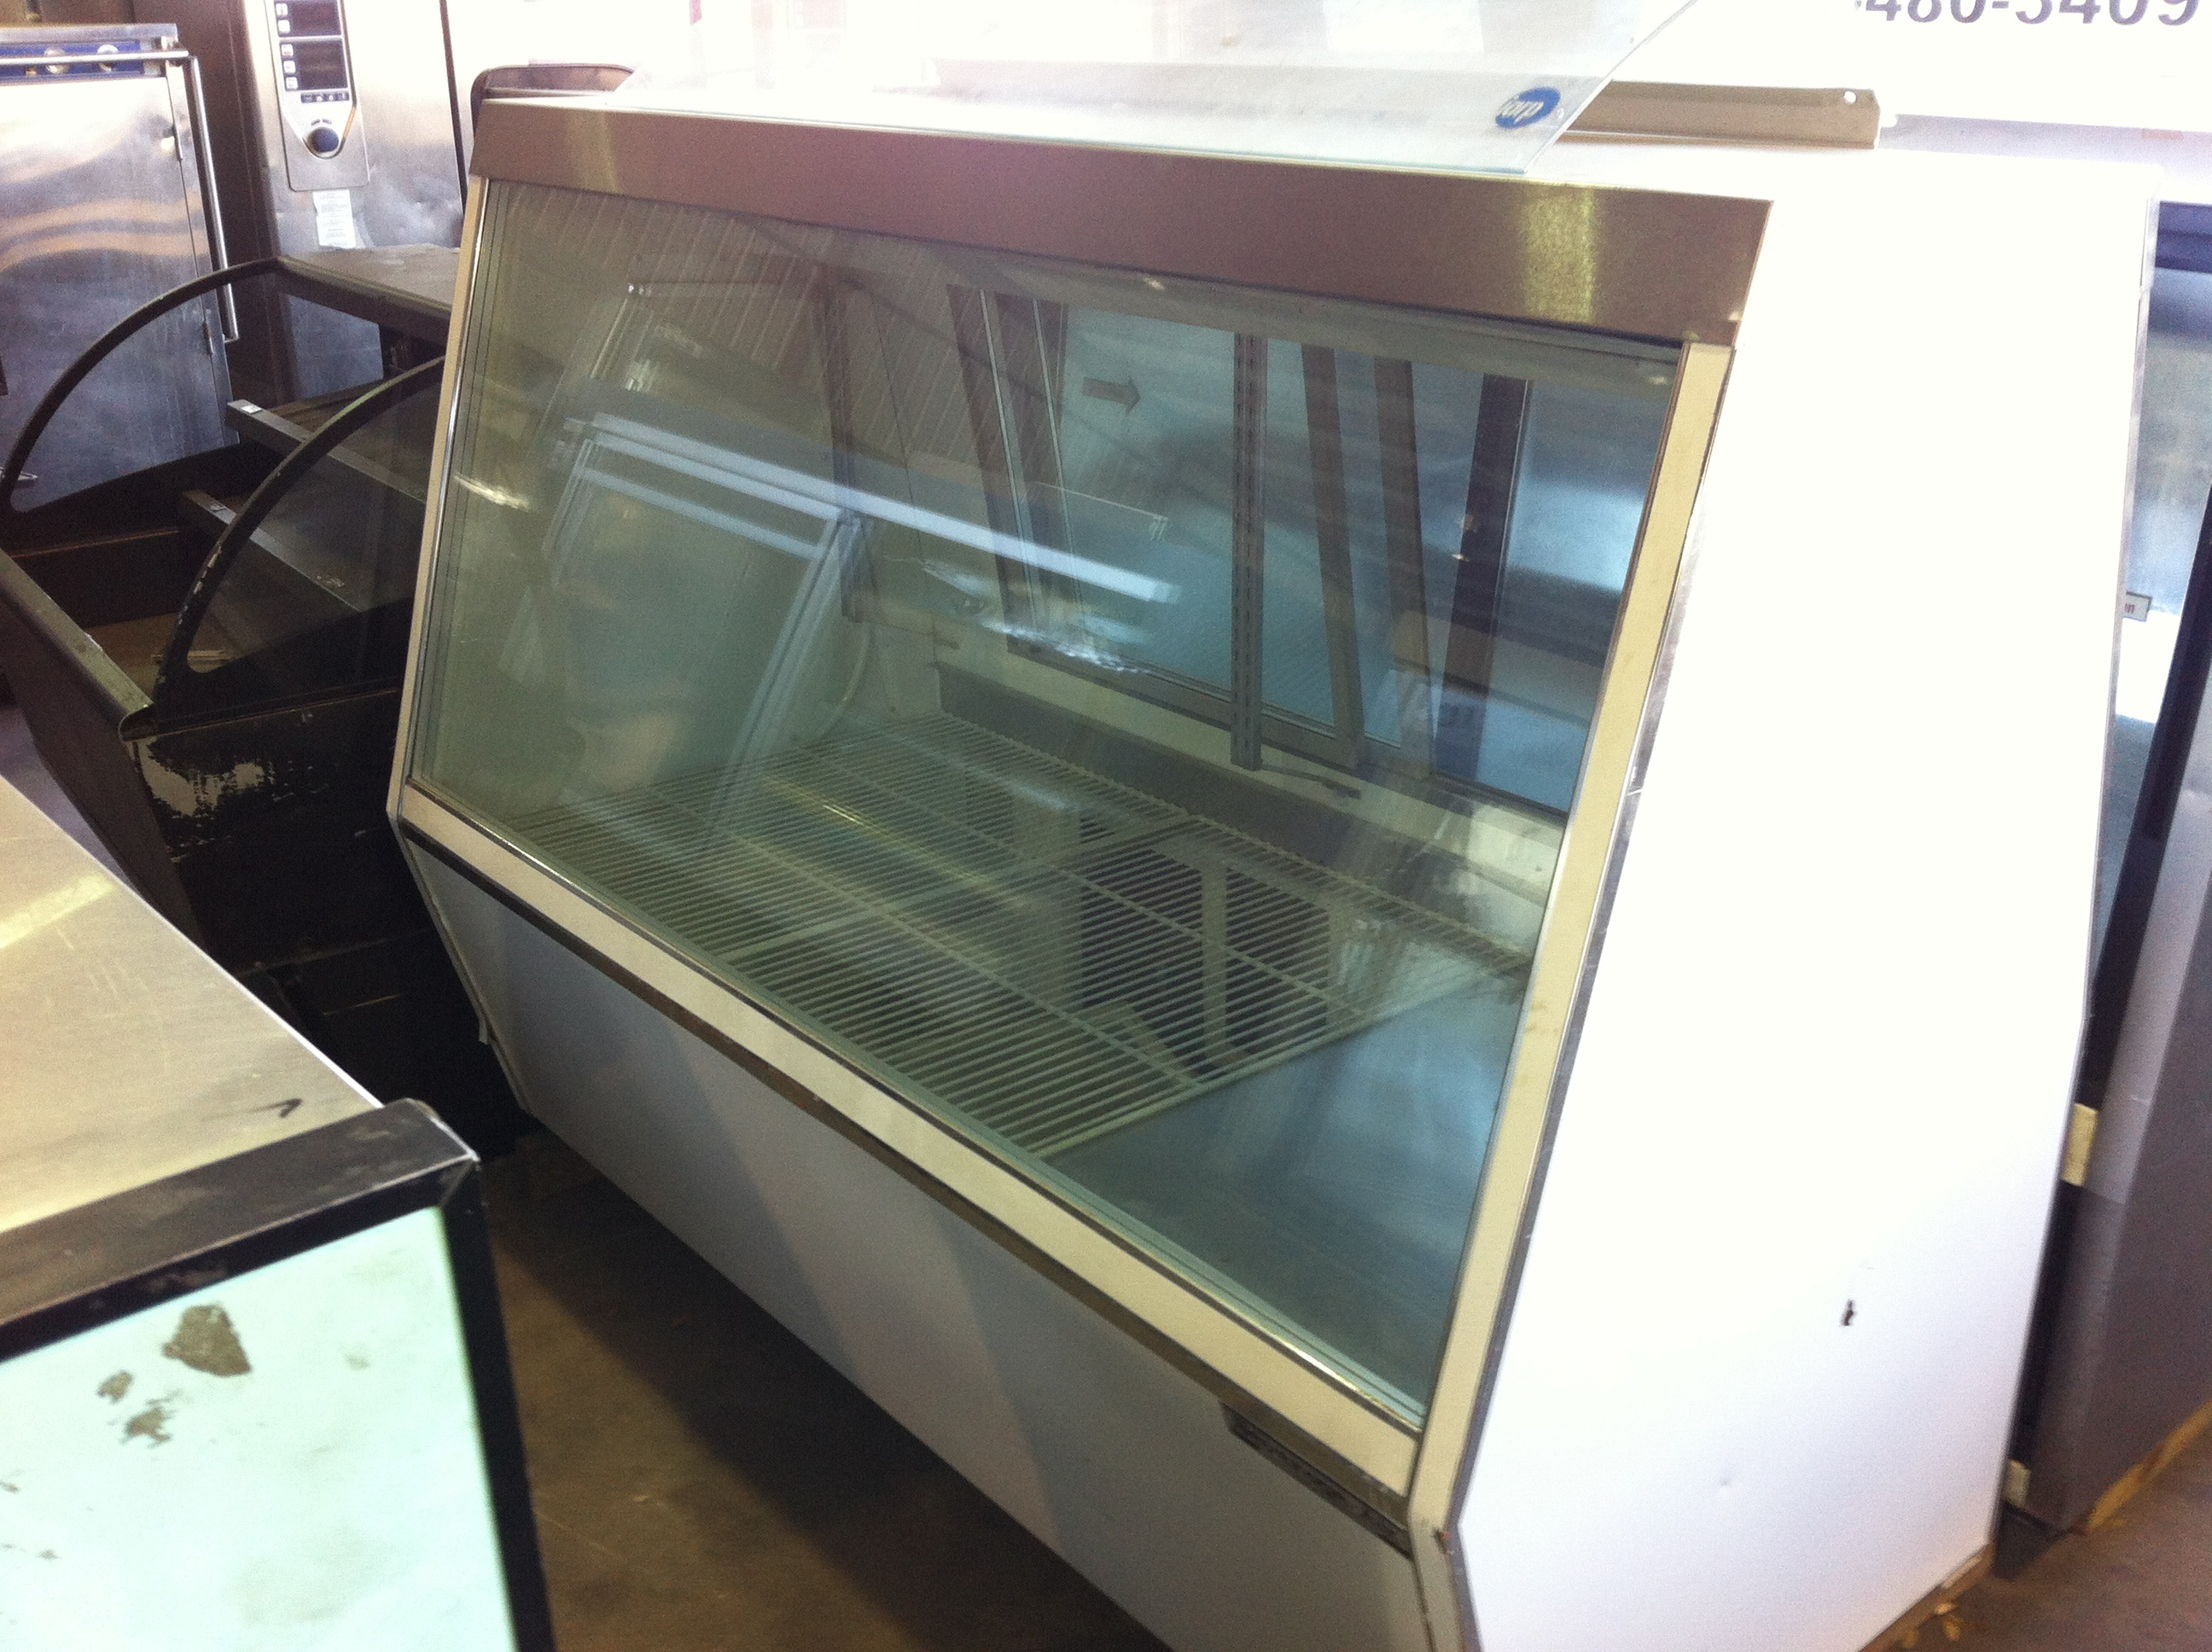 used kitchen equipment miami wall organizer fine selection of display cases on sale one fat frog